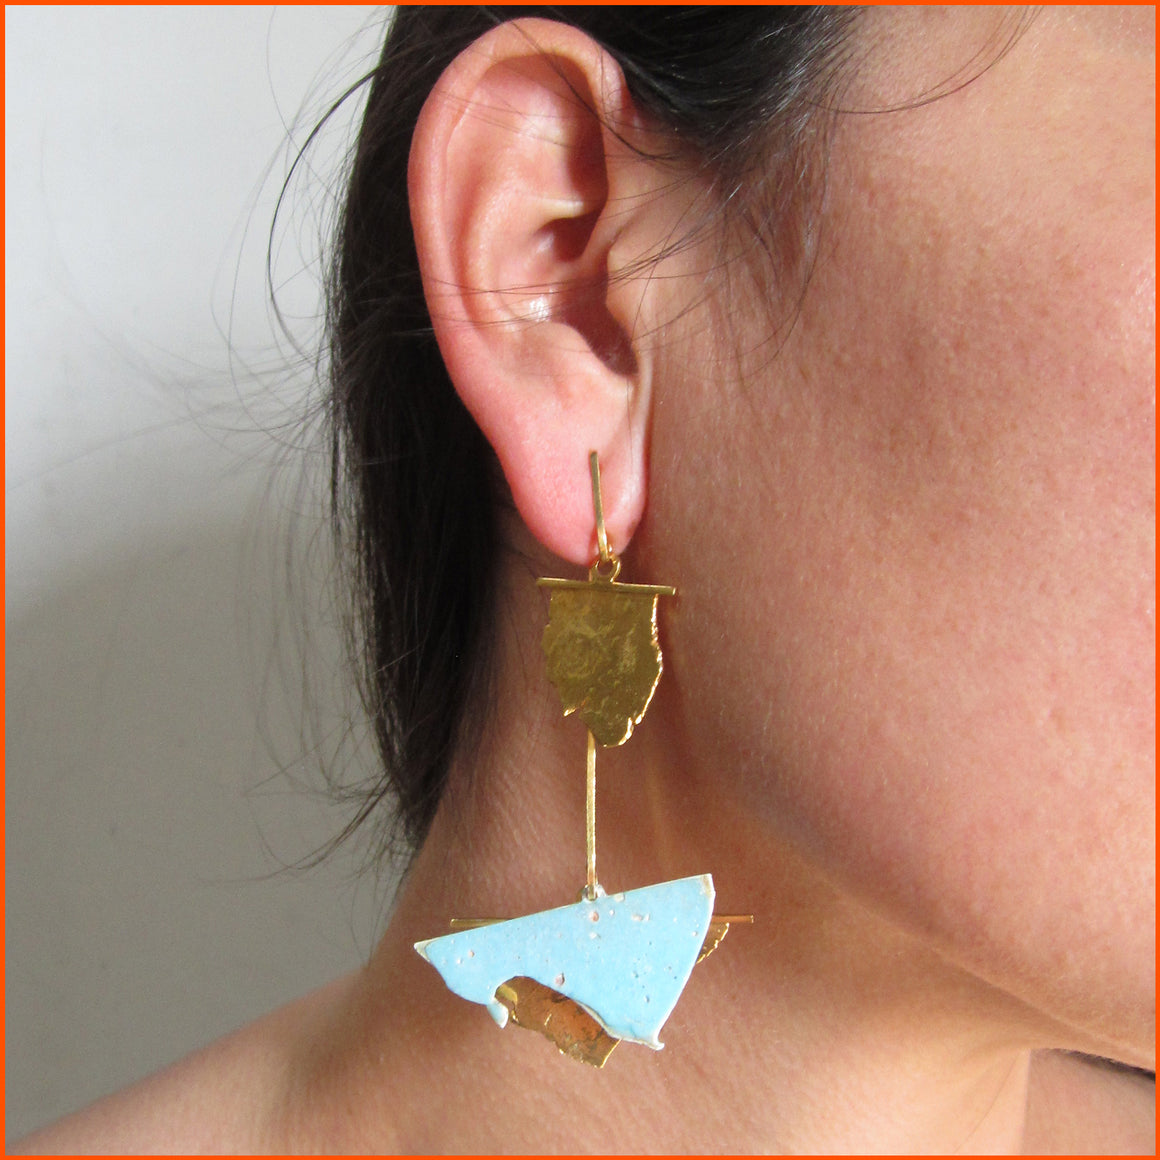 22K gold plated sterling silver enamel earrings by Seth Papac